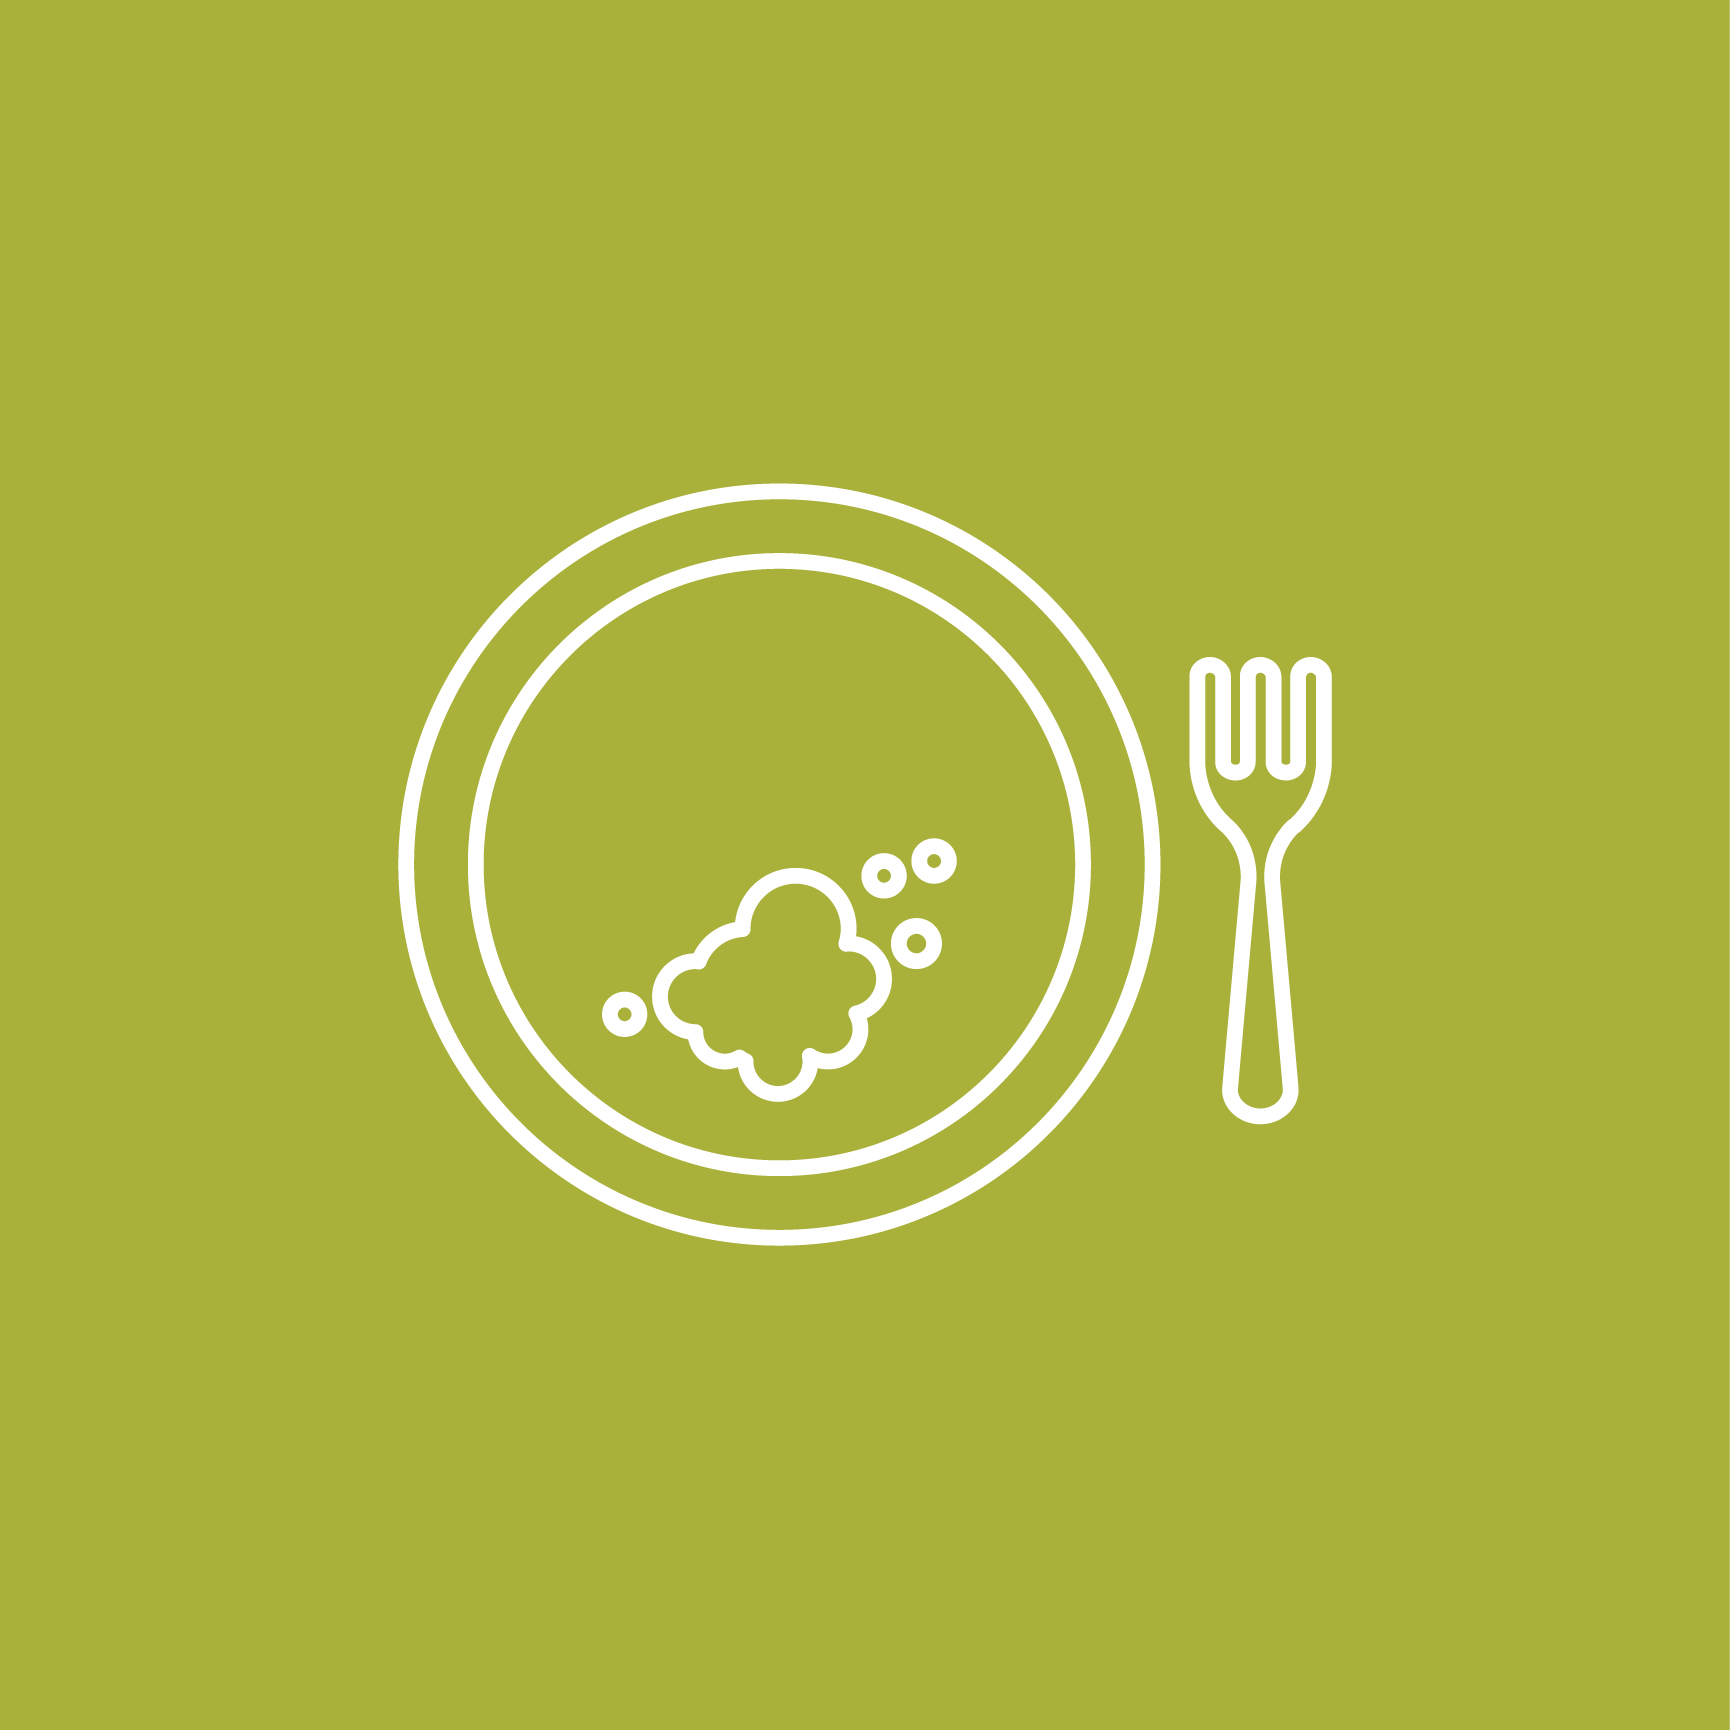 Icon of dirty plate